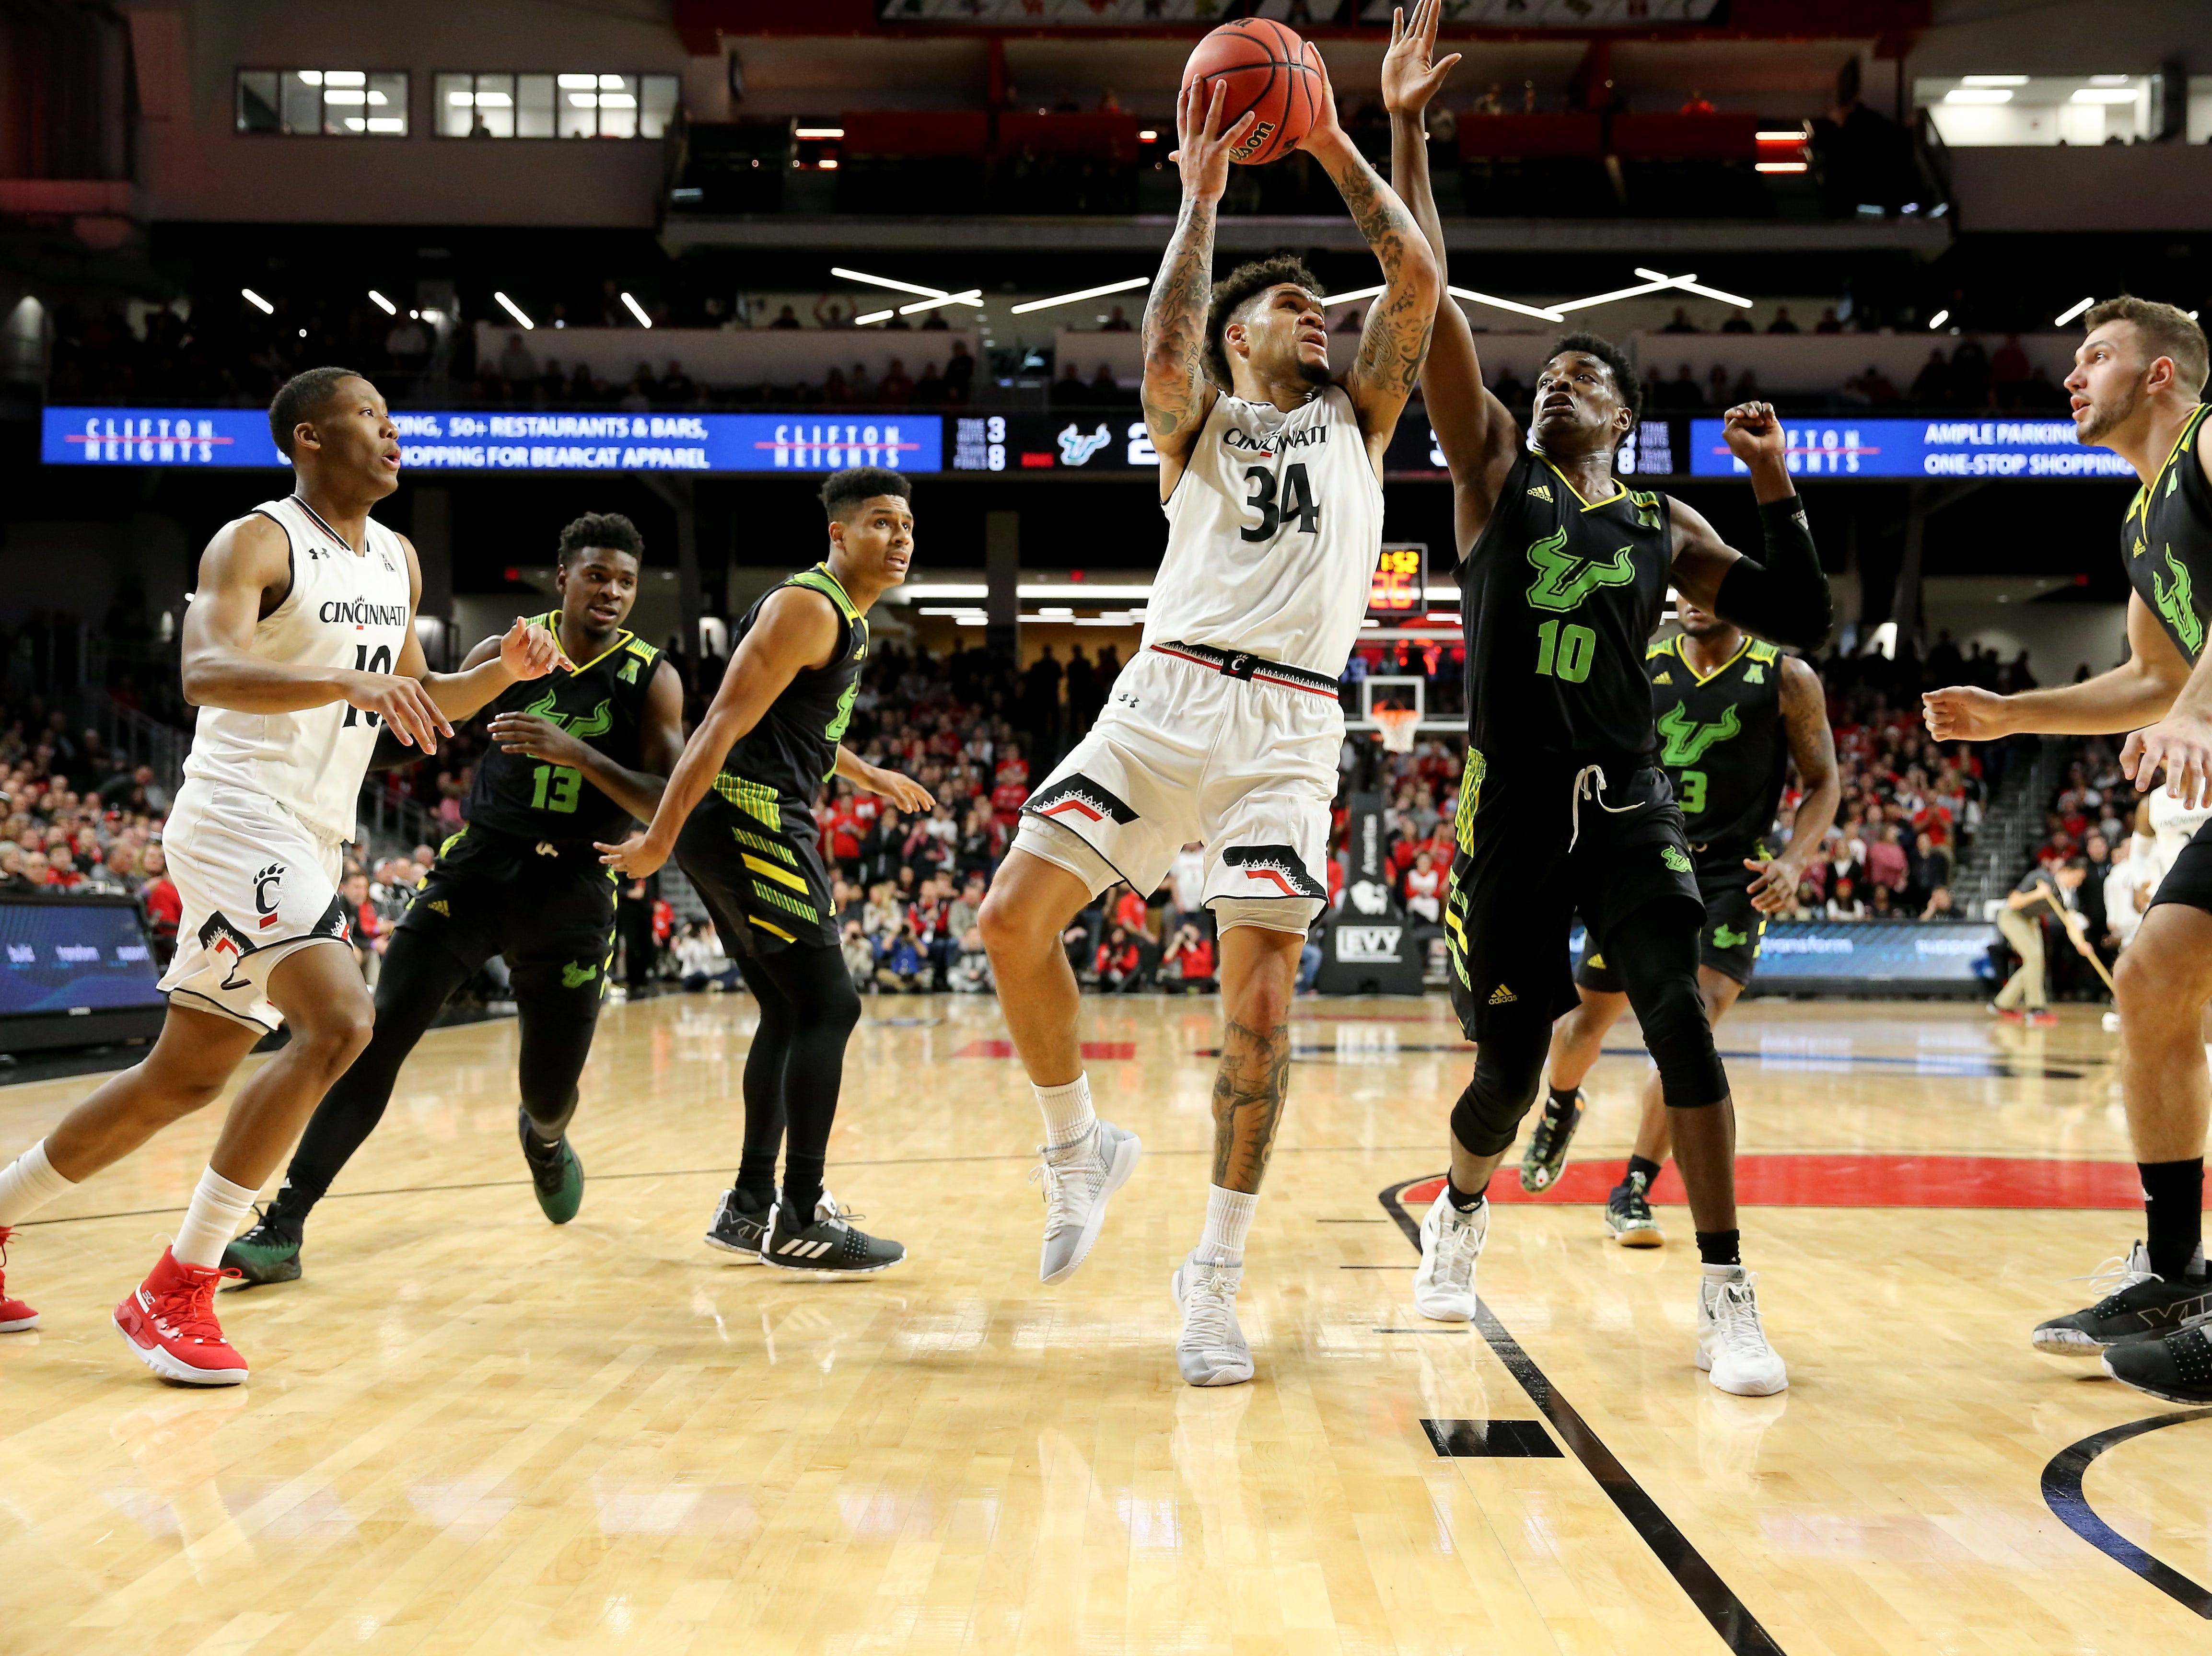 Cincinnati Bearcats guard Jarron Cumberland (34) goes up for a shot as South Florida Bulls forward Alexis Yetna (10) defends in the first half of an NCAA college basketball game, Tuesday, Jan. 15, 2019, at Fifth Third Arena in Cincinnati.